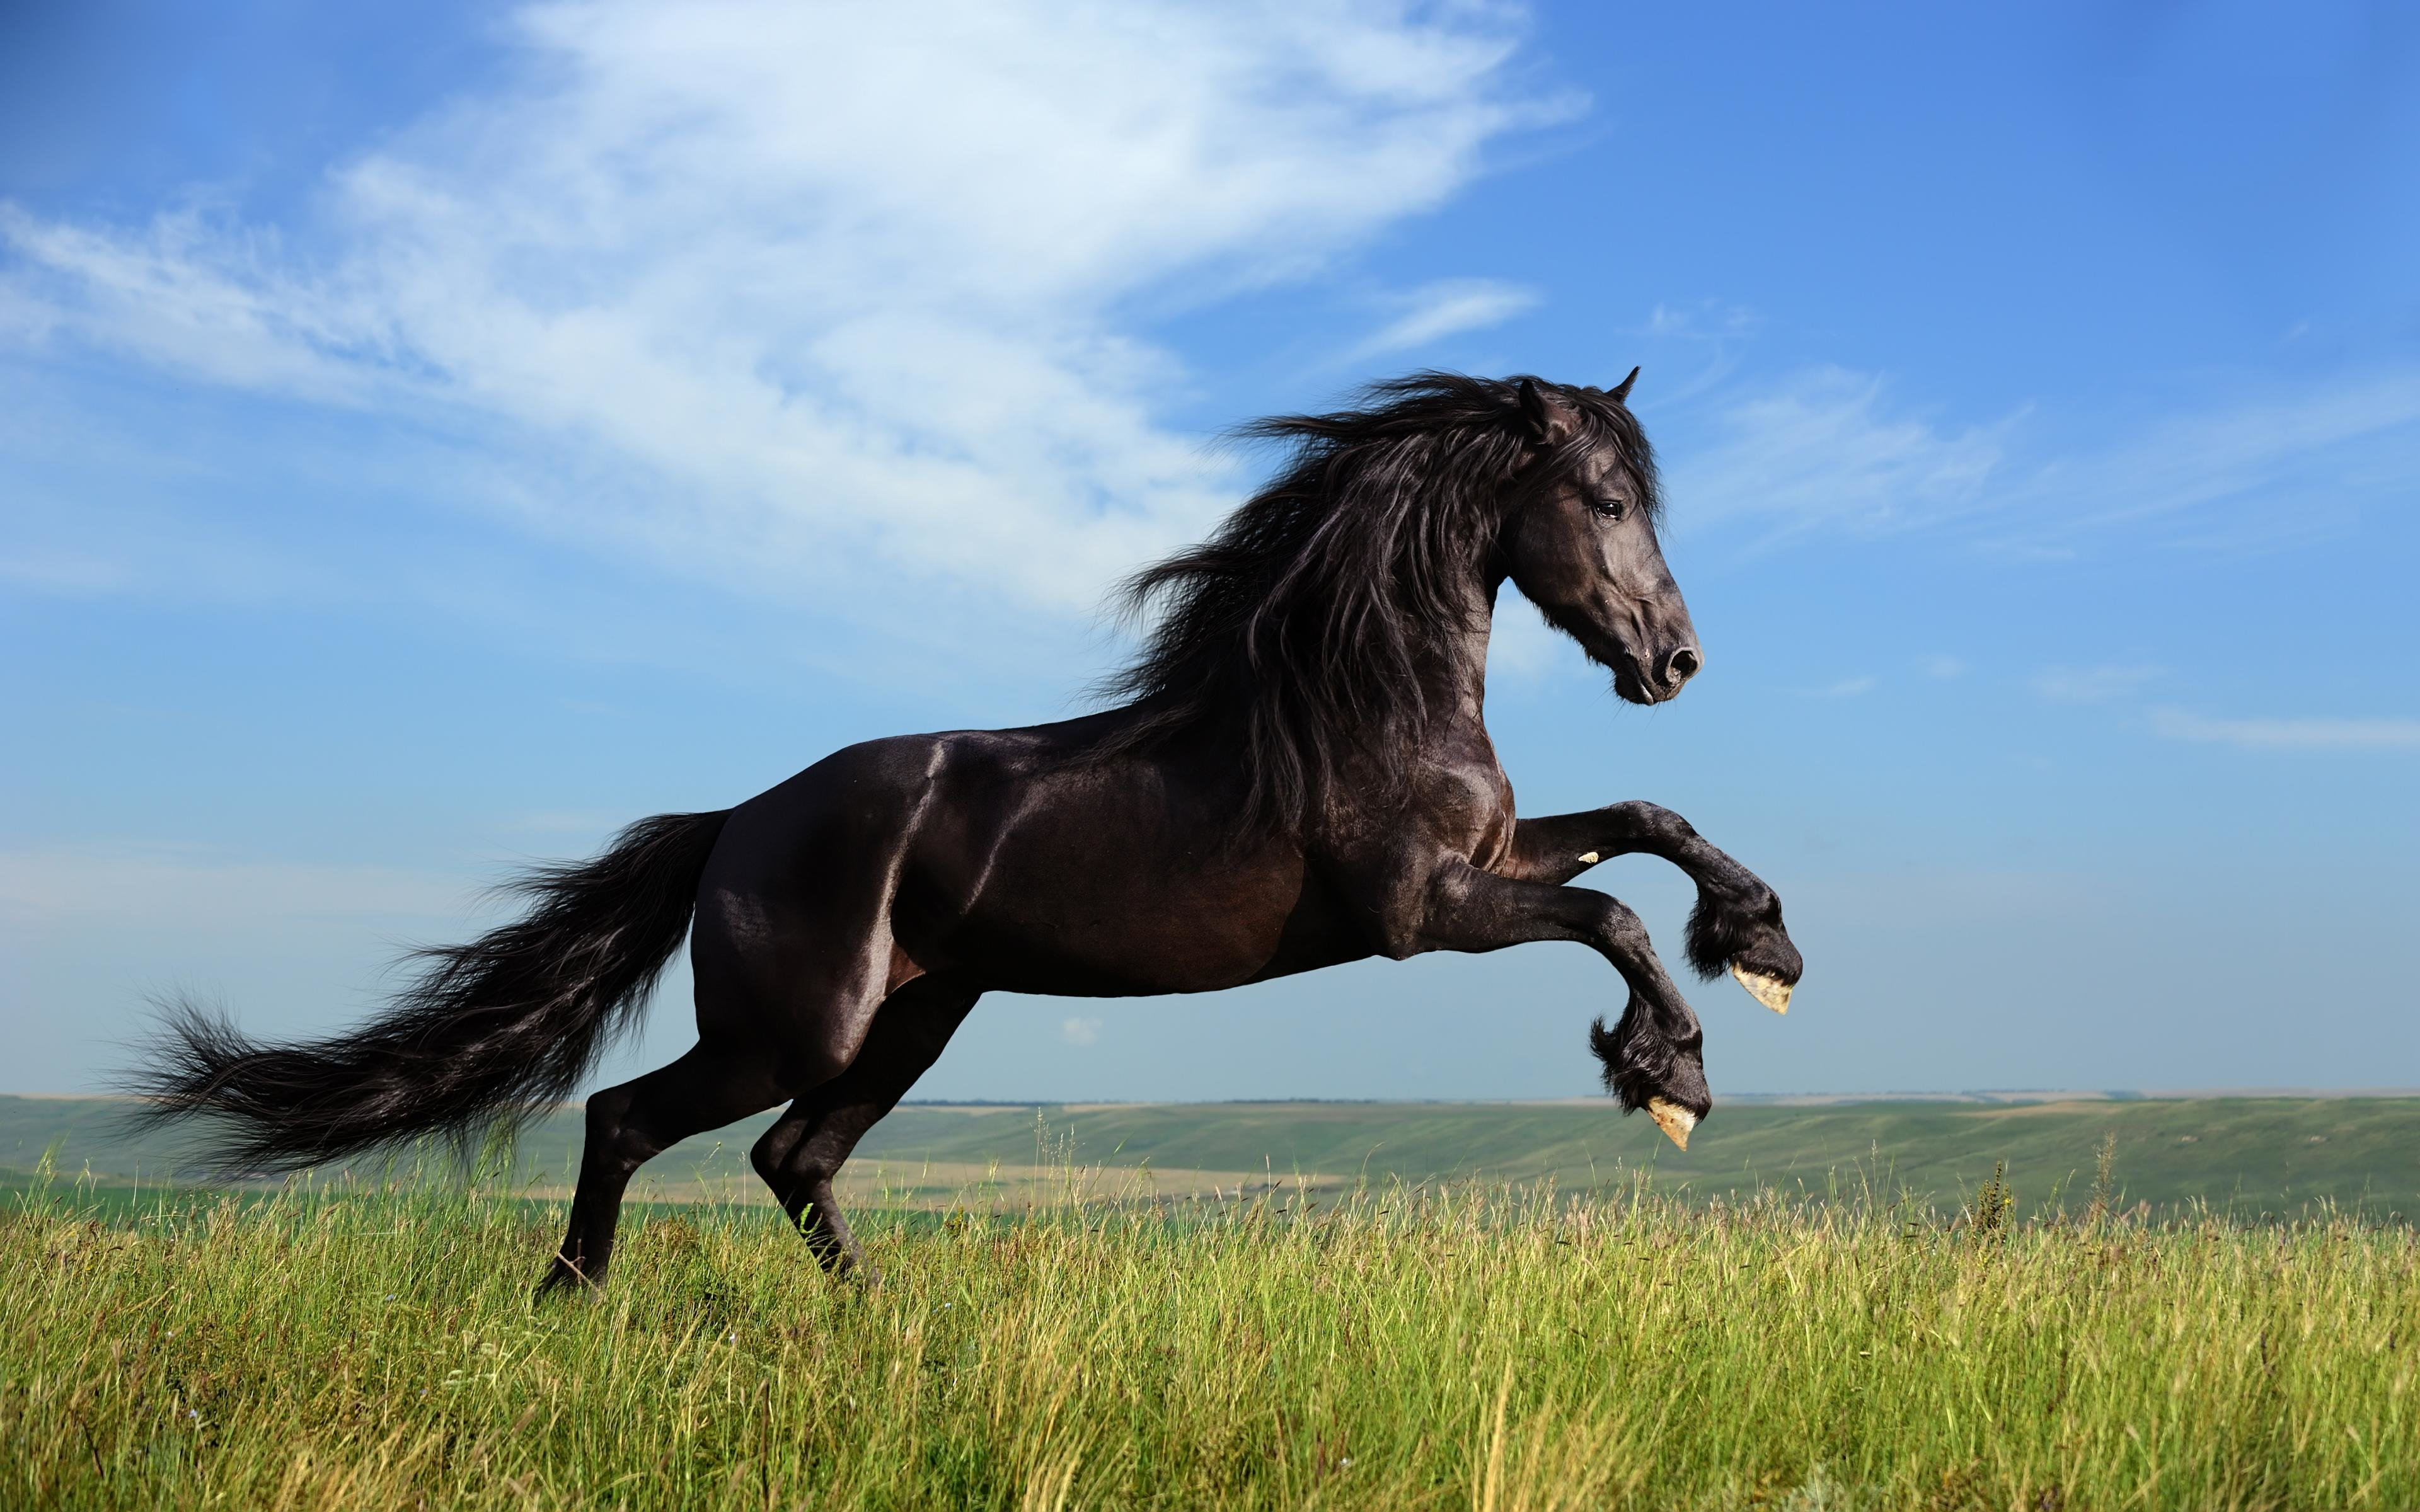 Awesome Horse free wallpaper ID:23160 for hd 3840x2400 computer